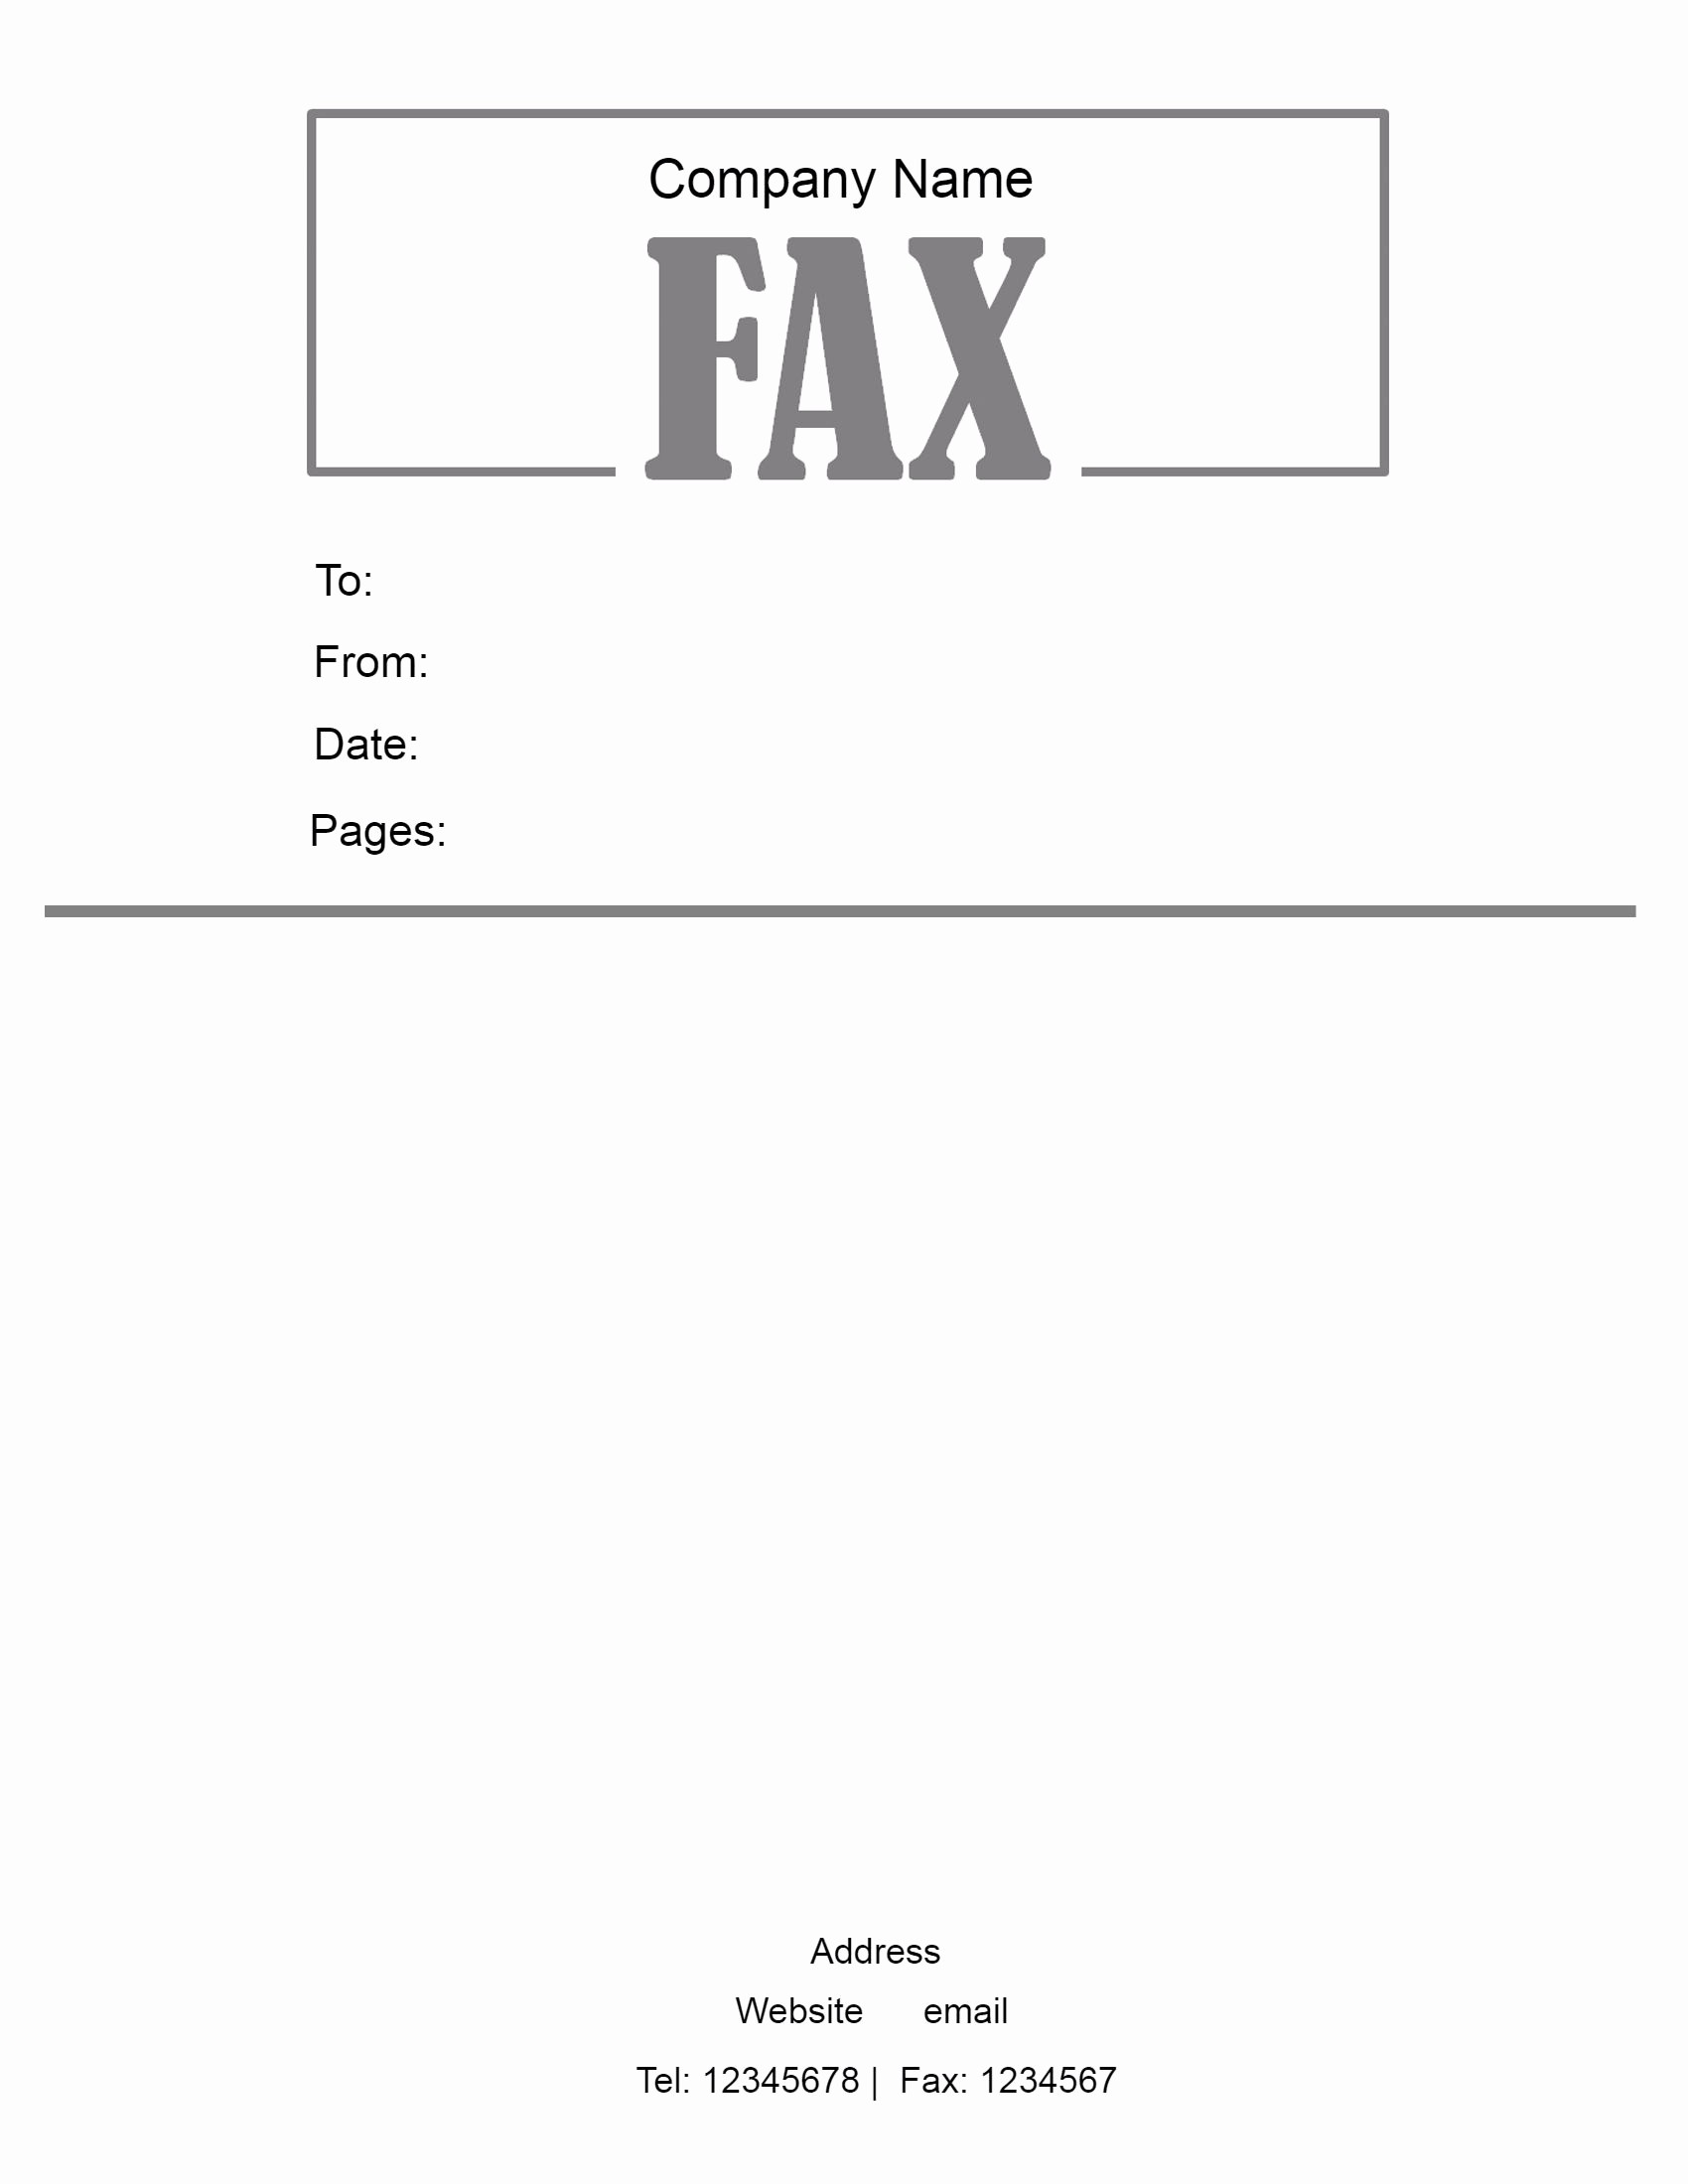 Fax Cover Sheet Pdf format Luxury Free Fax Cover Letter Template